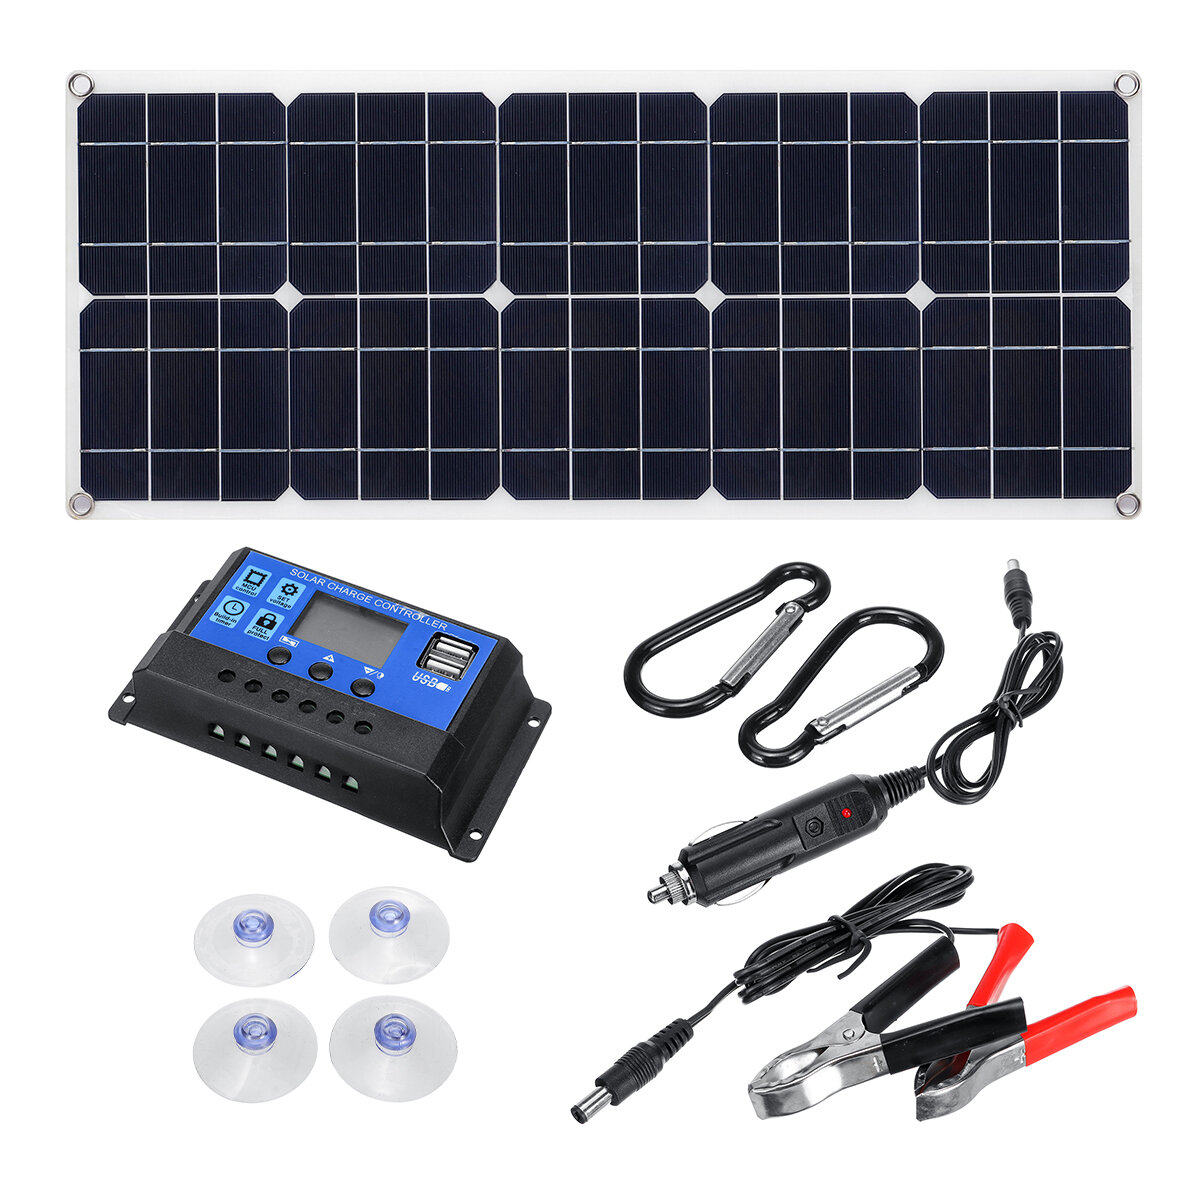 100W 18V MonocrystalineSolar Panel Dual 12V / 5V DC USB Charger Kit with 10A Solar Controller & Cables